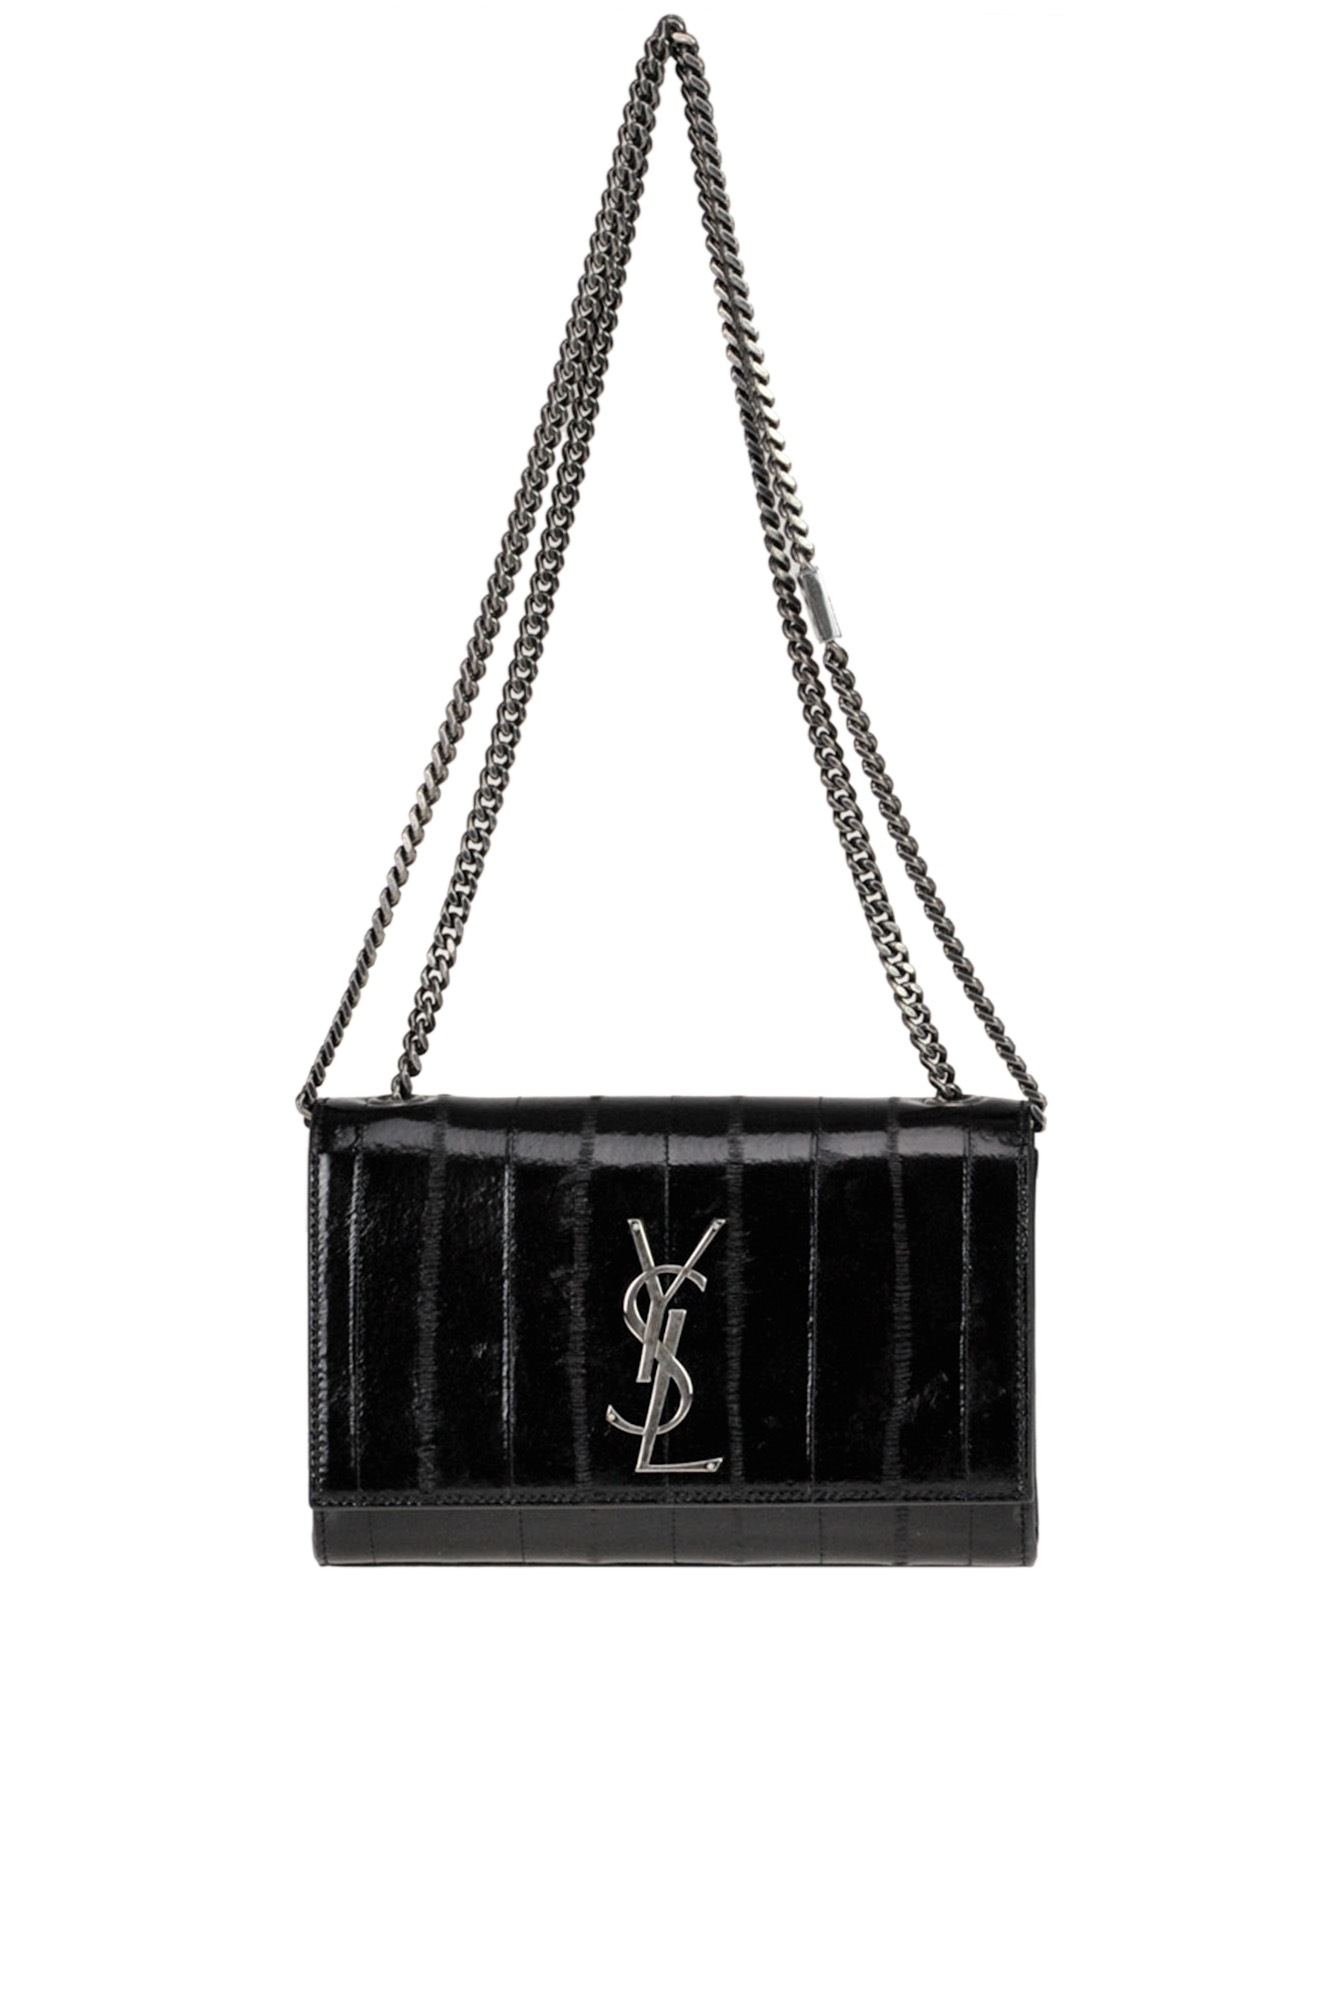 Saint Laurent New S Kate Leather Bag In Black